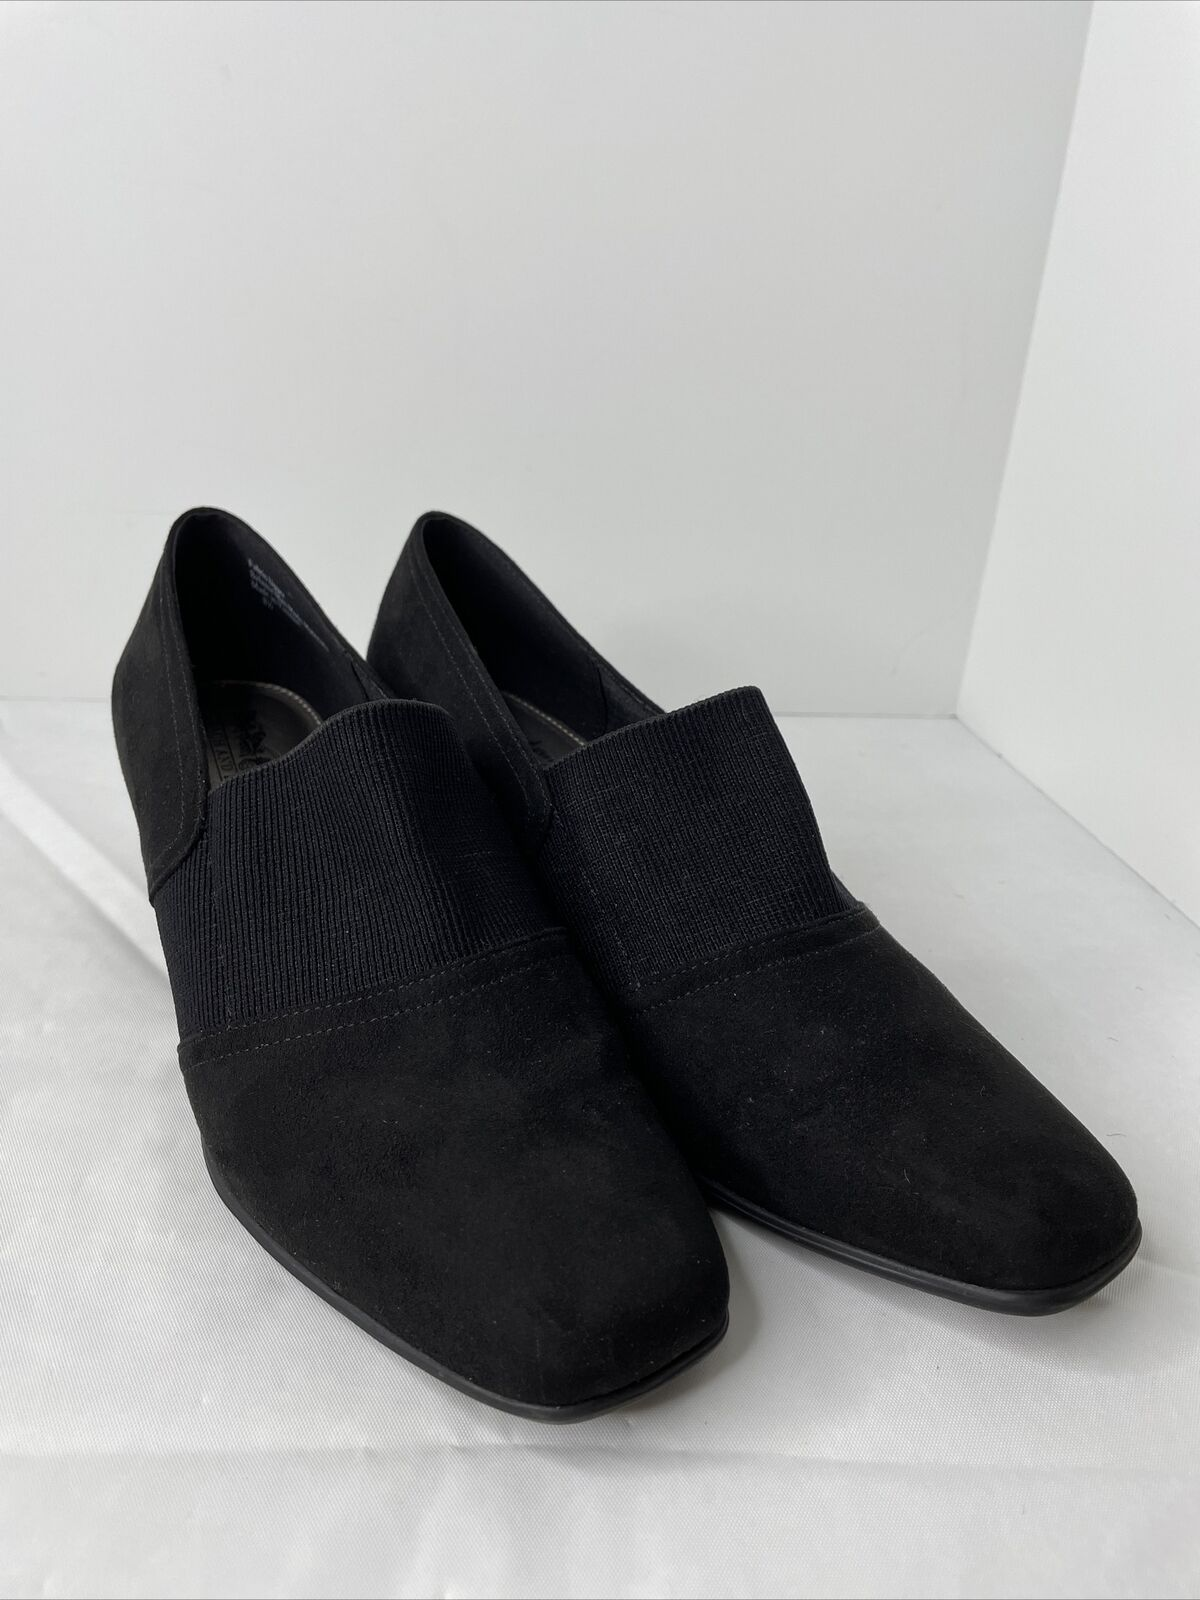 Coach And Four Black Dress Casual Slip On Shoes with Heal Size 8.5 ~ Classy